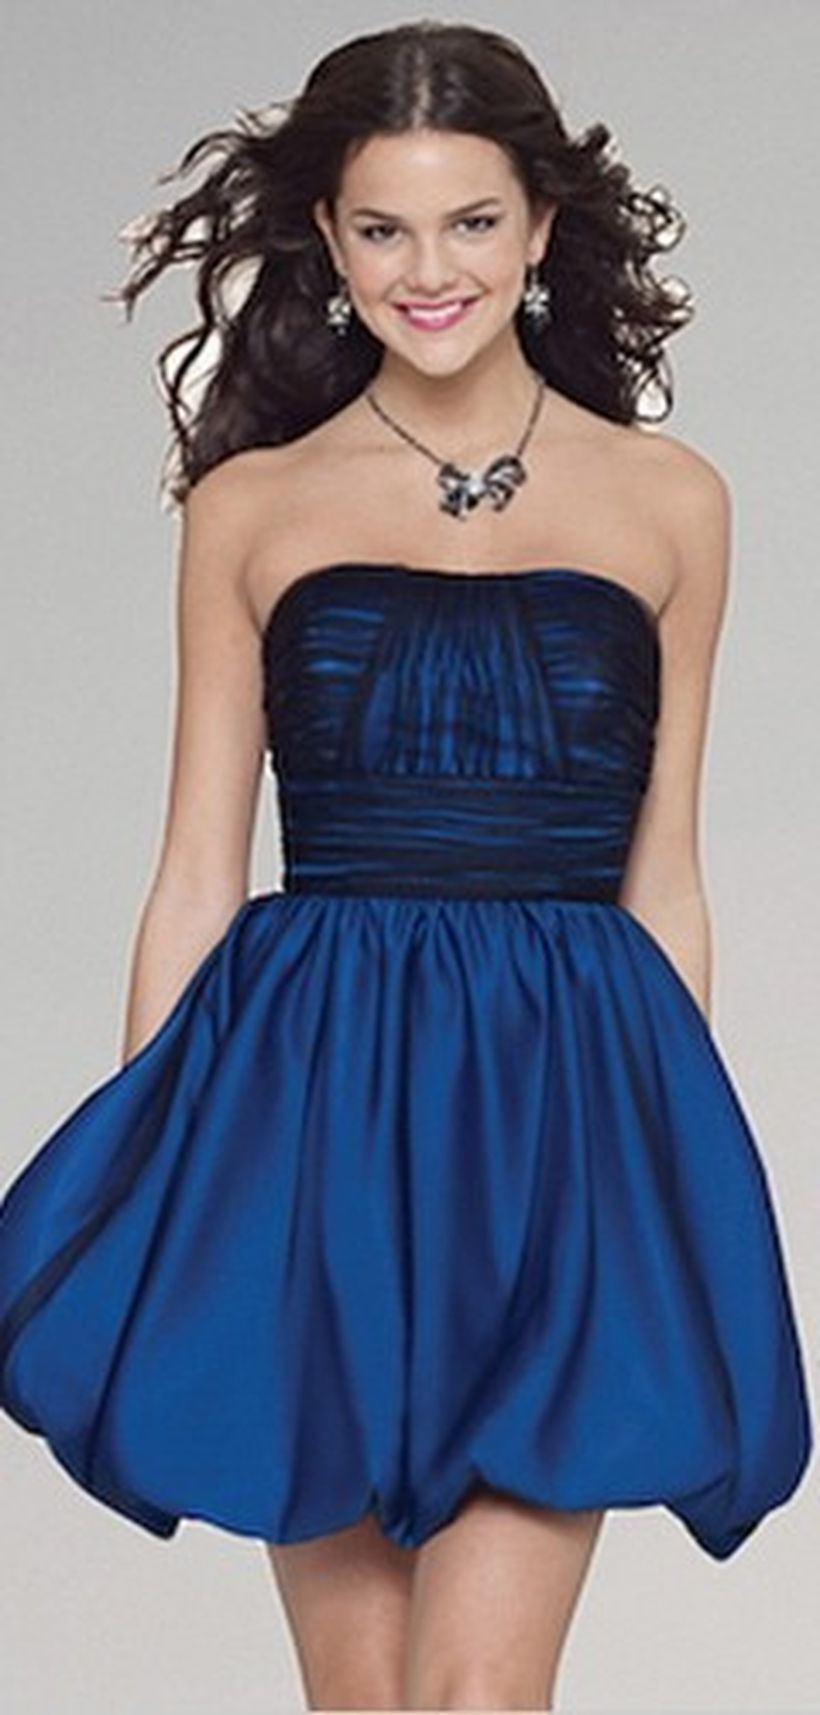 Awesome teens short dresses ideas for graduation outfits 18